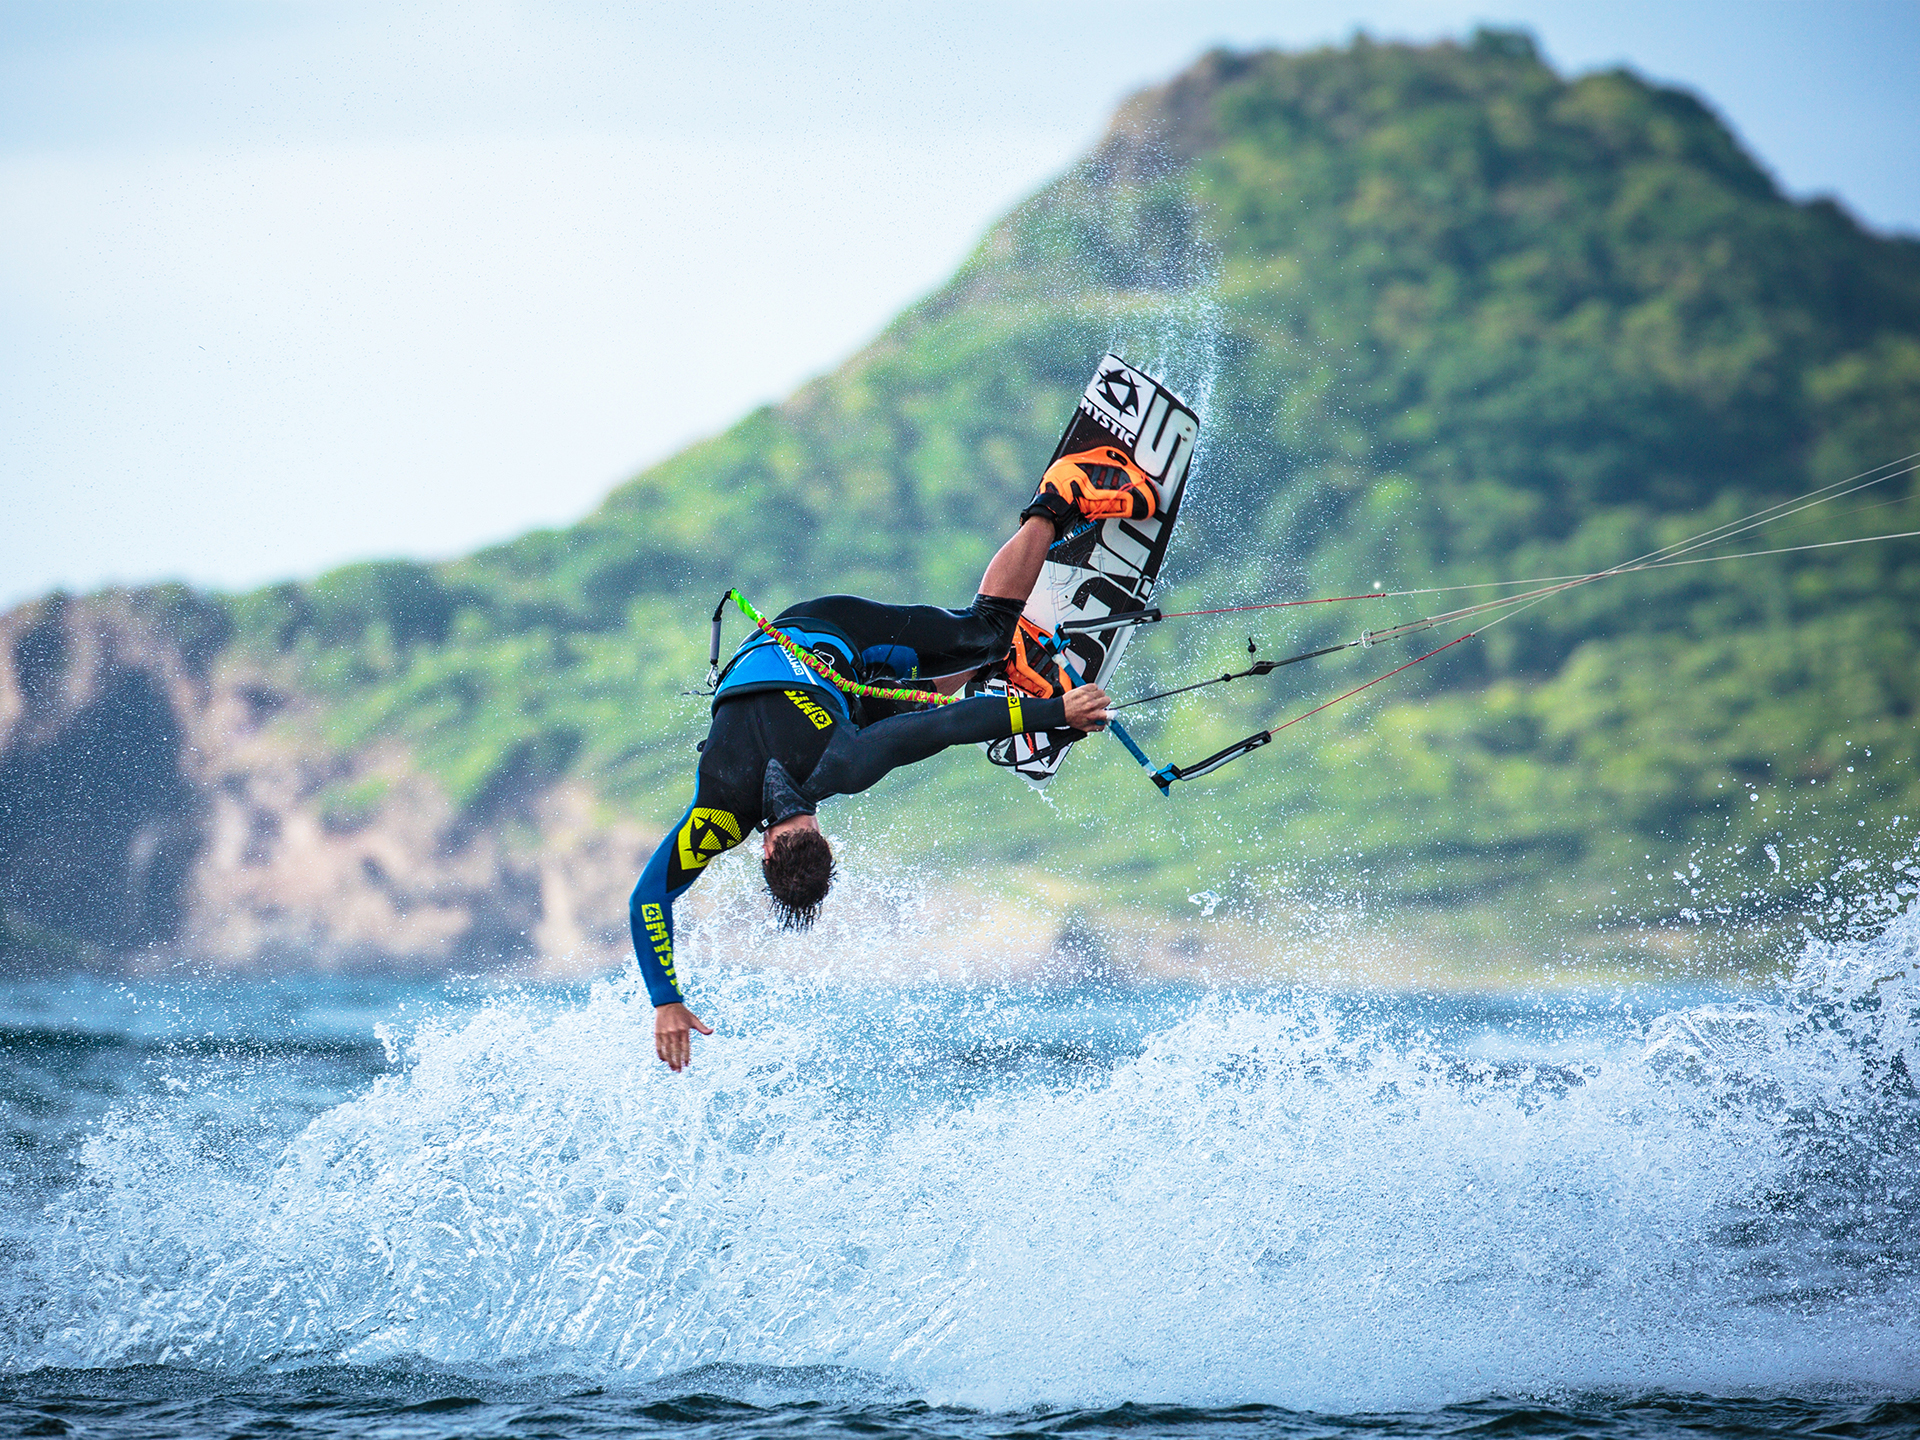 kitesurf wallpaper image - Kiteboarder Marc Jacobs showing off an incredible low mobe - in resolution: Standard 4:3 1920 X 1440